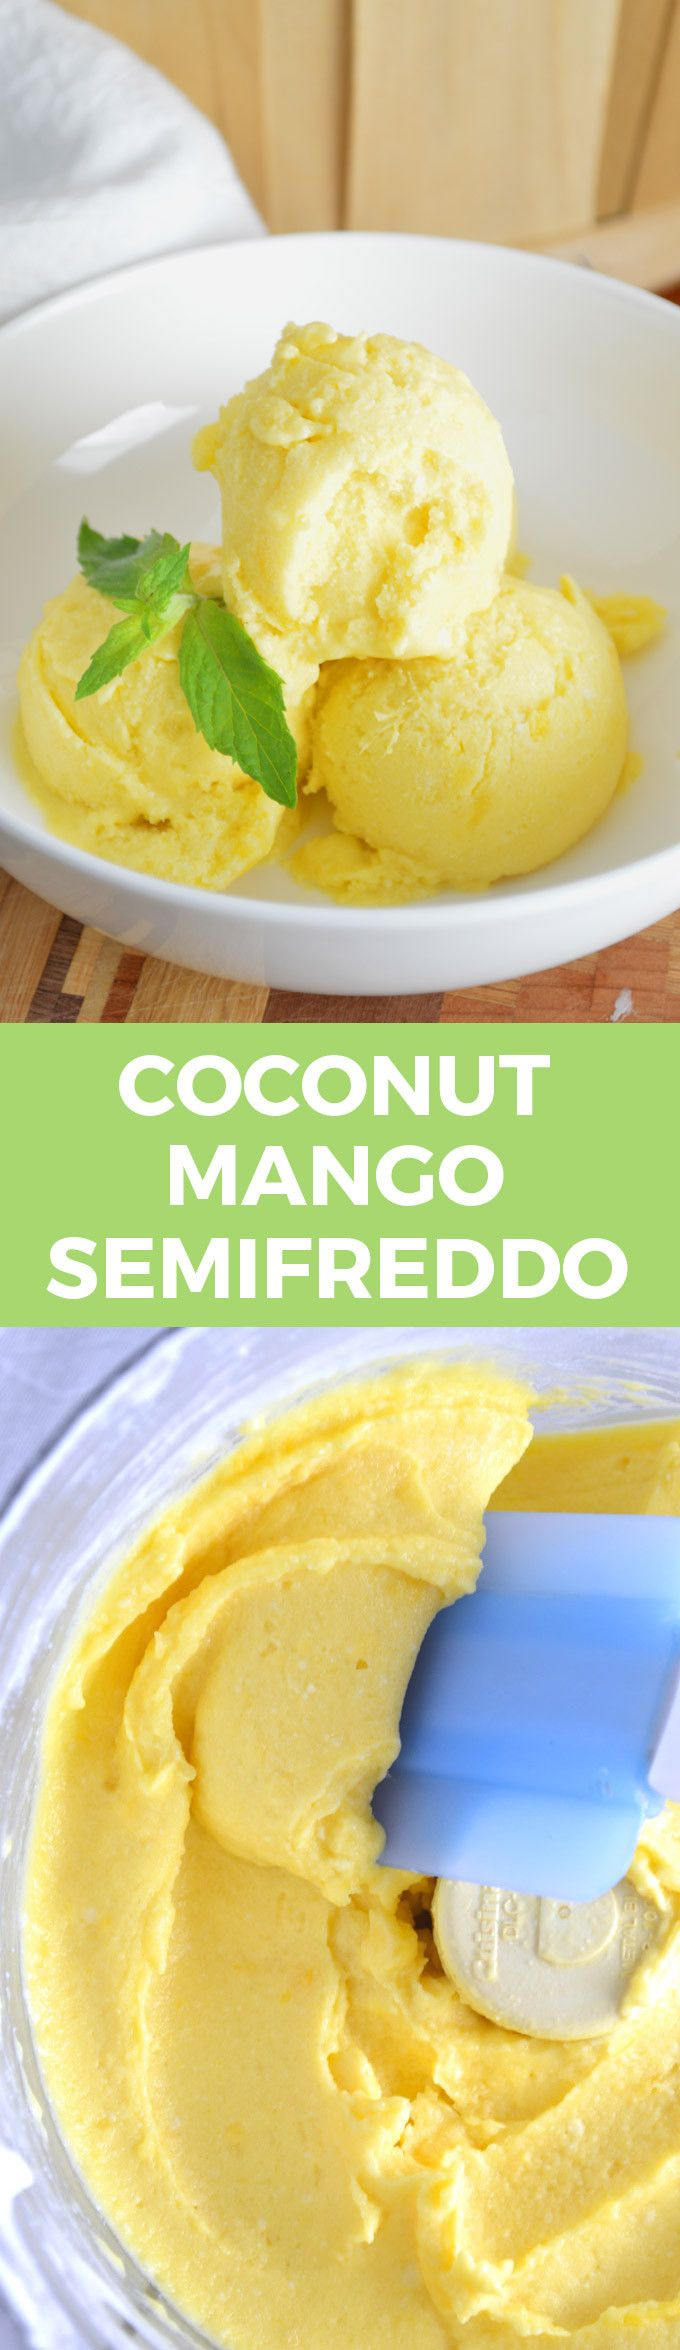 Coconut Mango Semifreddo -- 2 ingredients and 5 minutes to a delicious, refreshing dessert!!